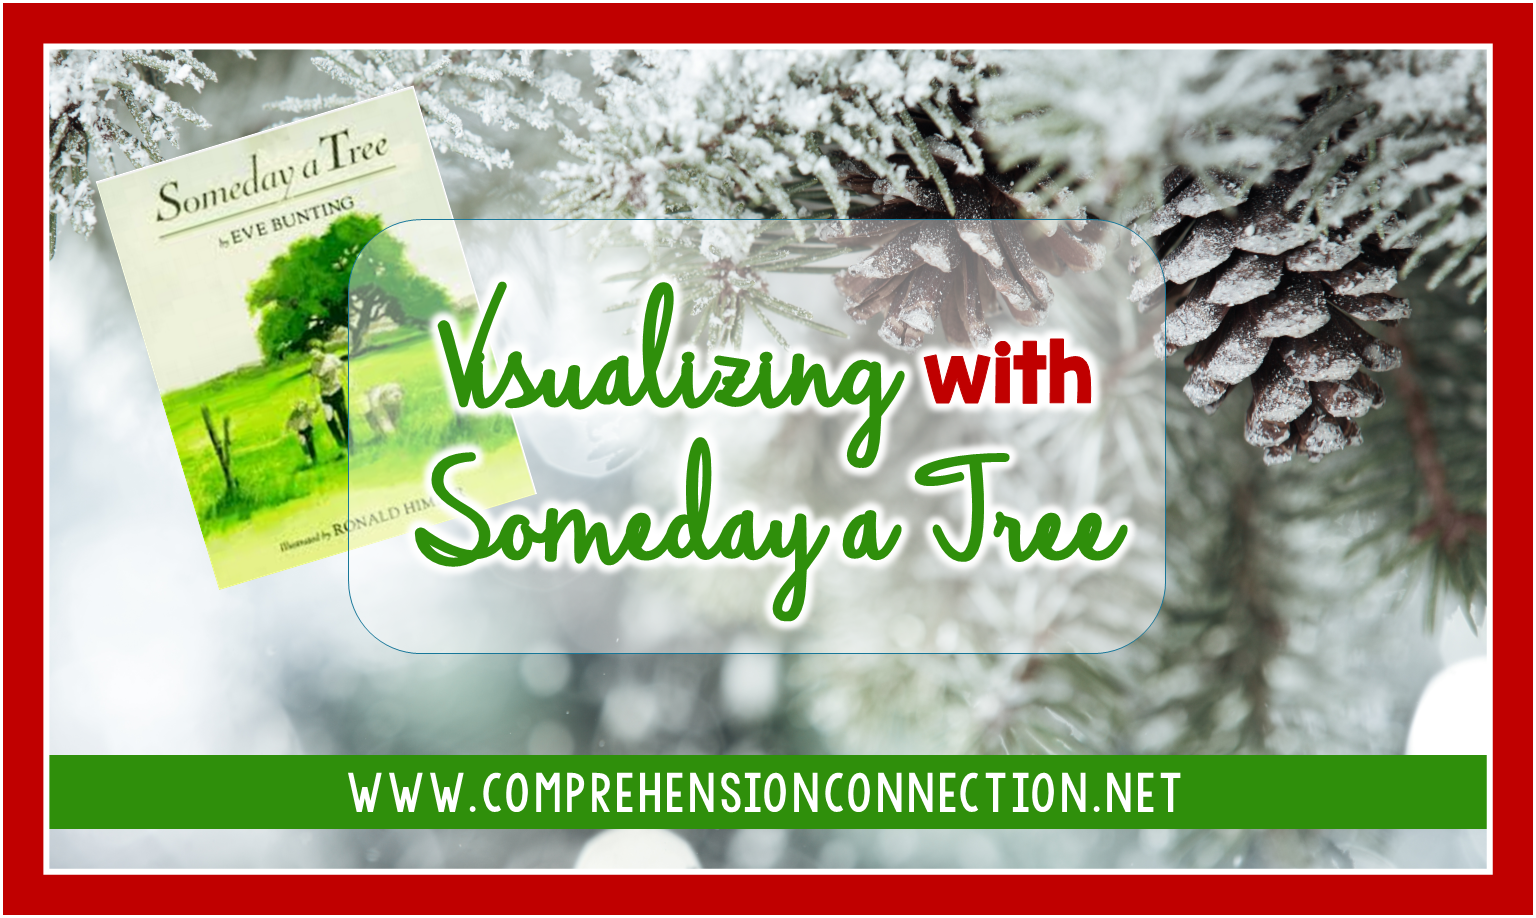 Visualizing With Someday A Tree